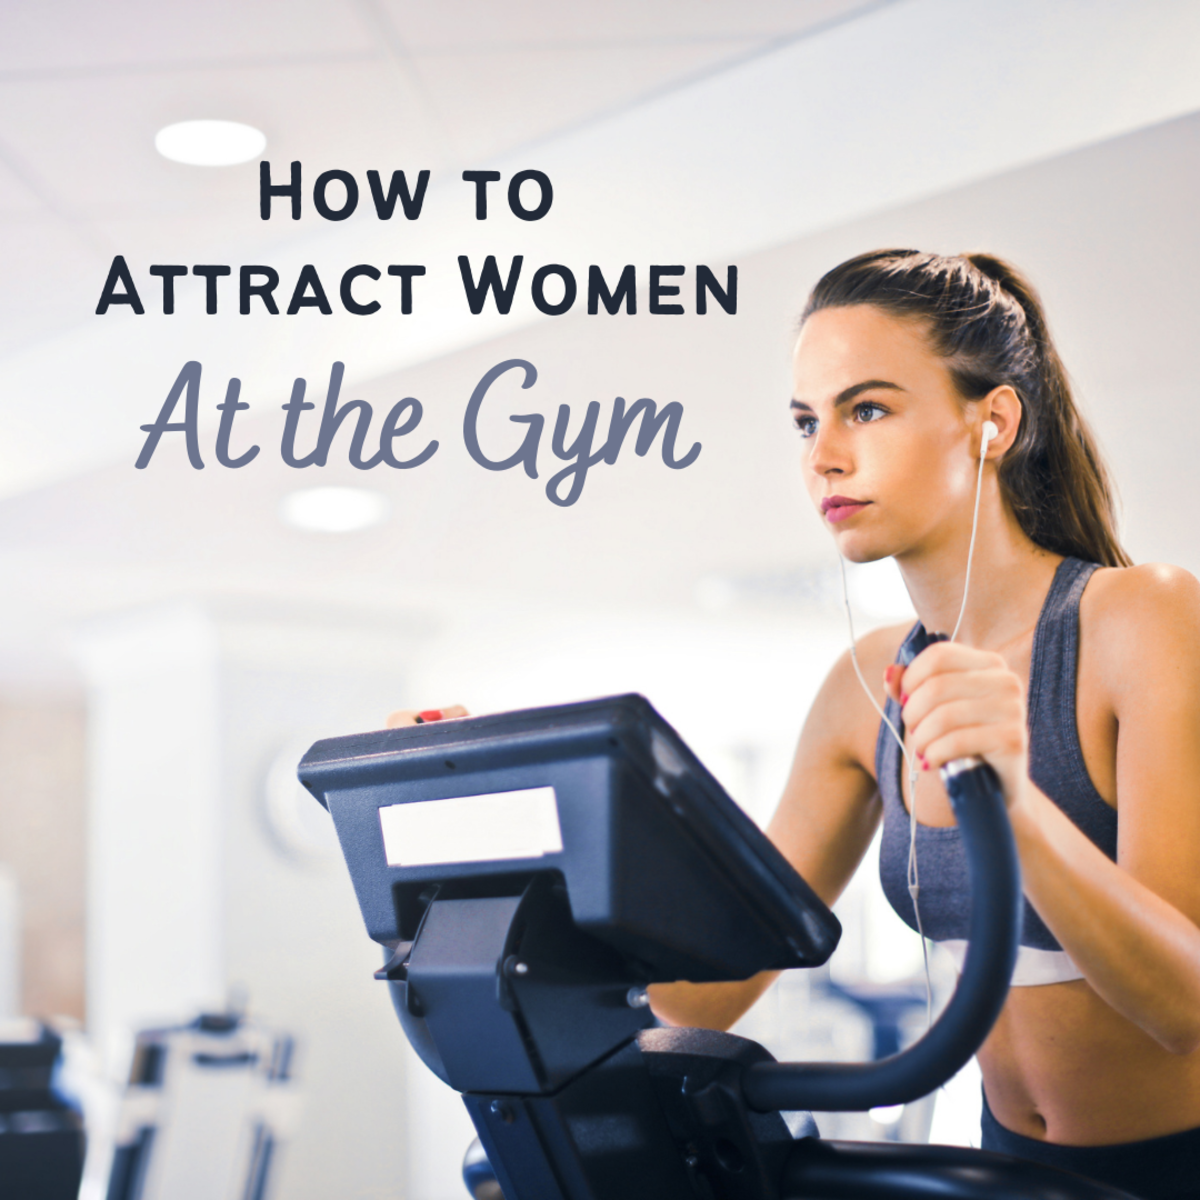 It can be hard to work up the courage to talk to an attractive girl at the gym. Here are some tips that will help you approach the girl you're interested in.